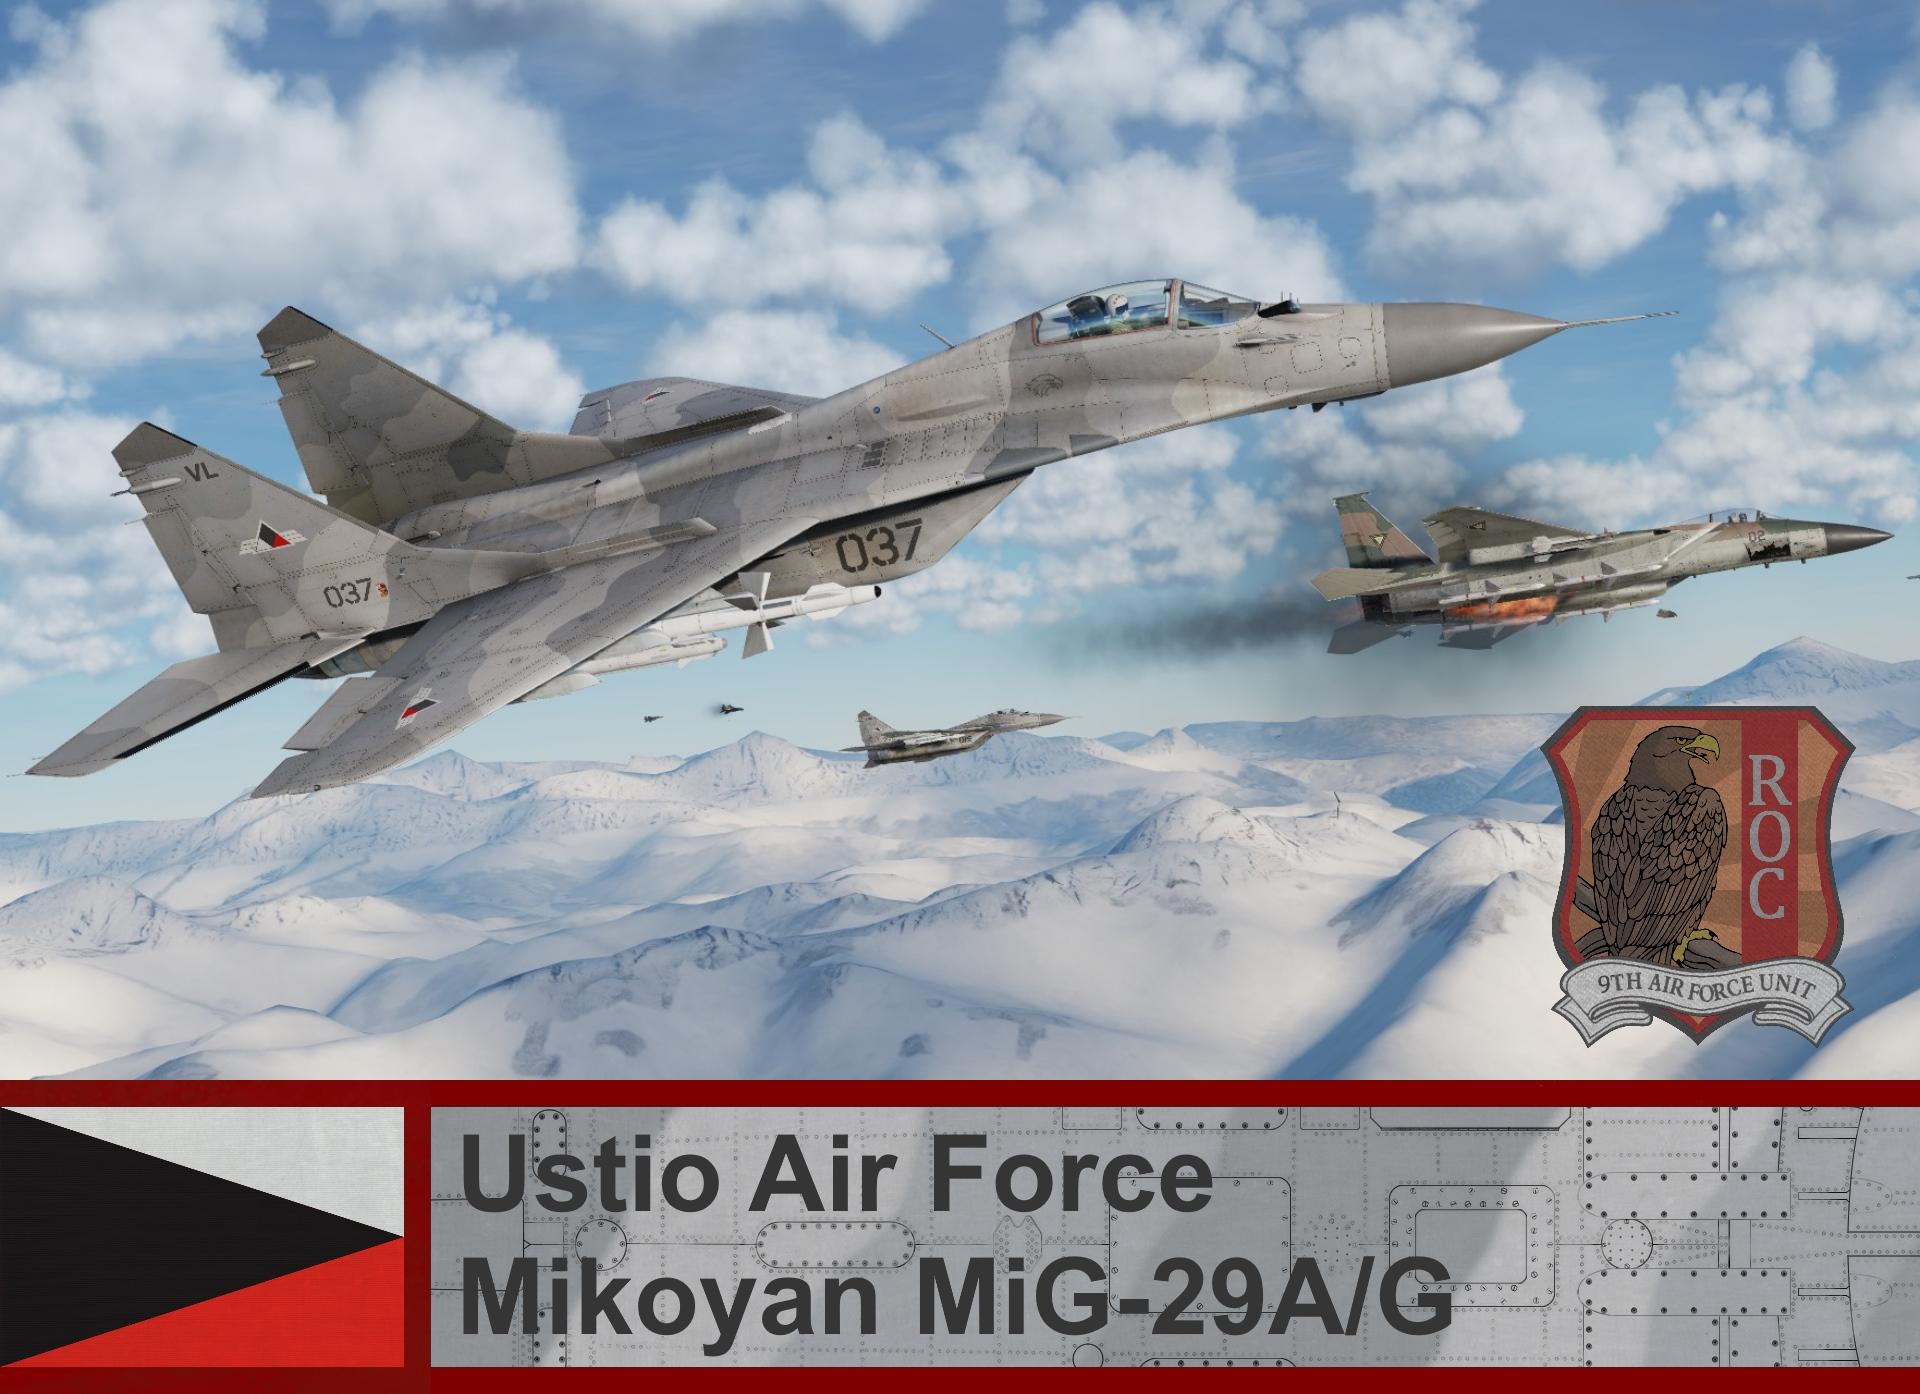 Ustio Air Force Mig-29A/G - Ace Combat Zero (09th AFU)